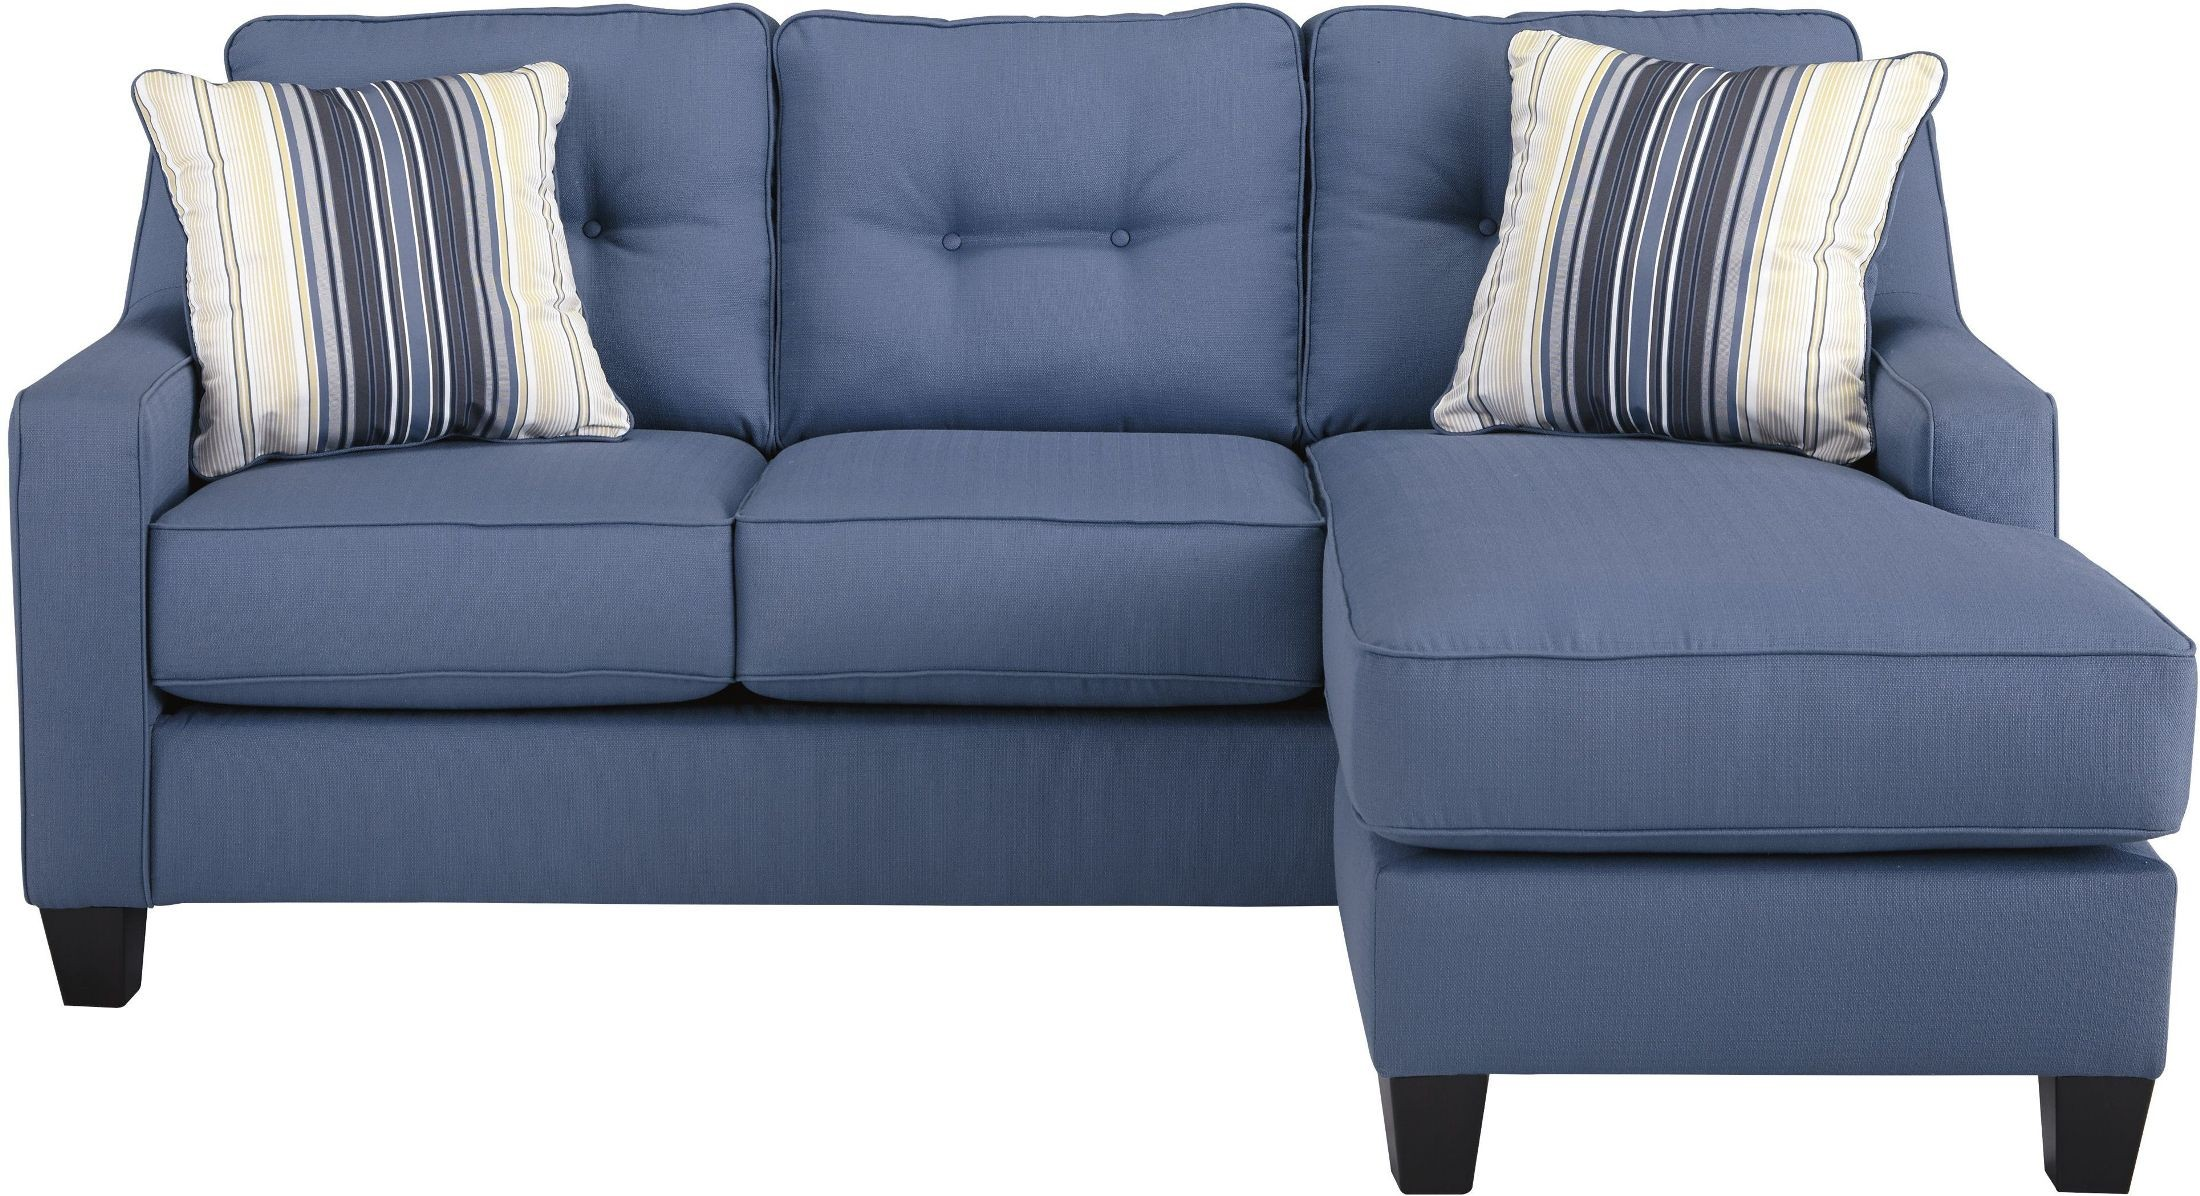 Aldie nuvella blue sofa chaise 6870318 ashley for Blue sectional with chaise